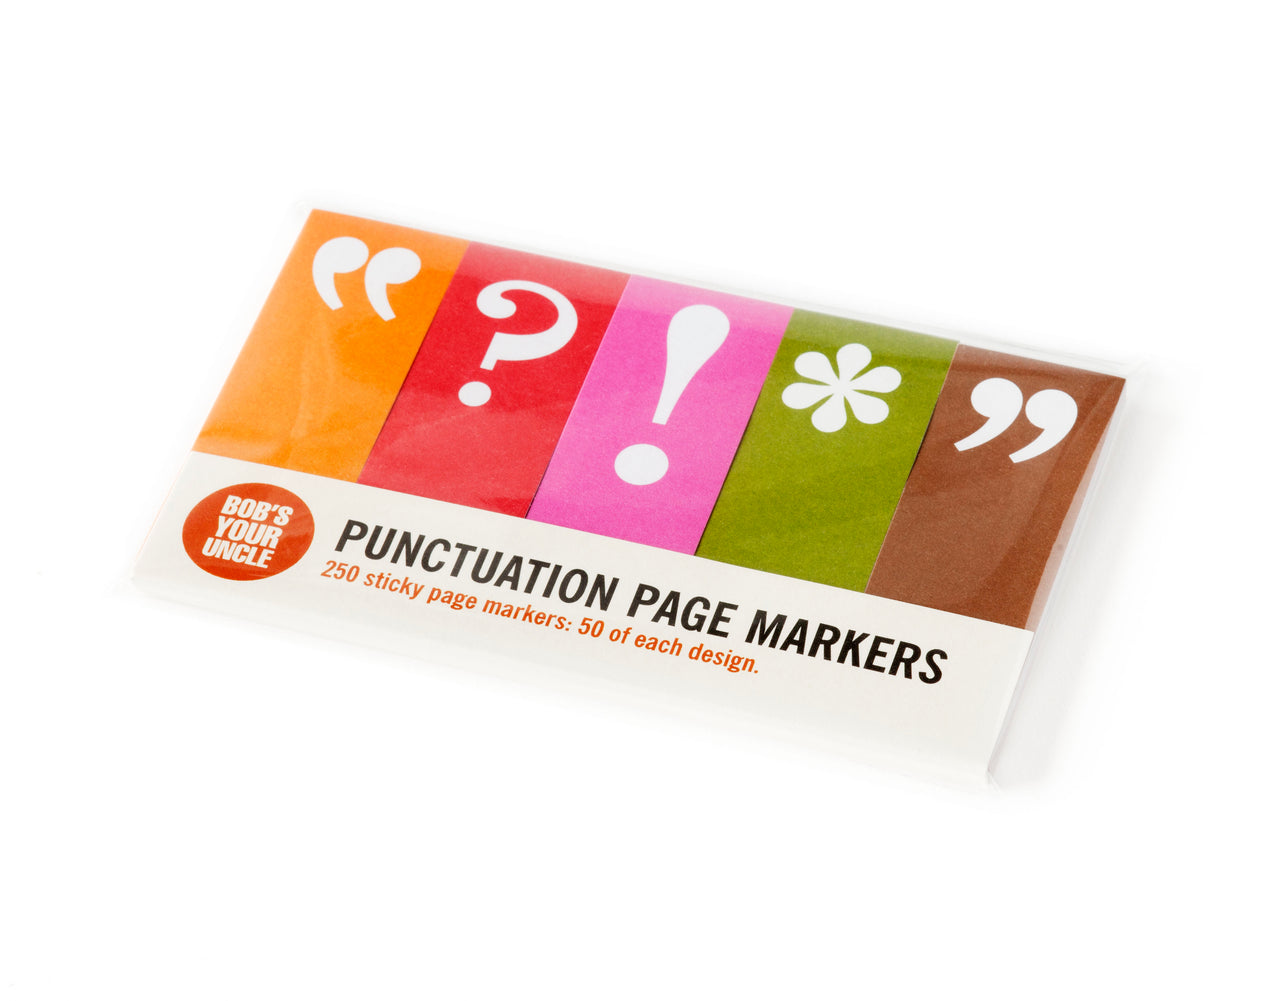 Punctuation Pagemarkers